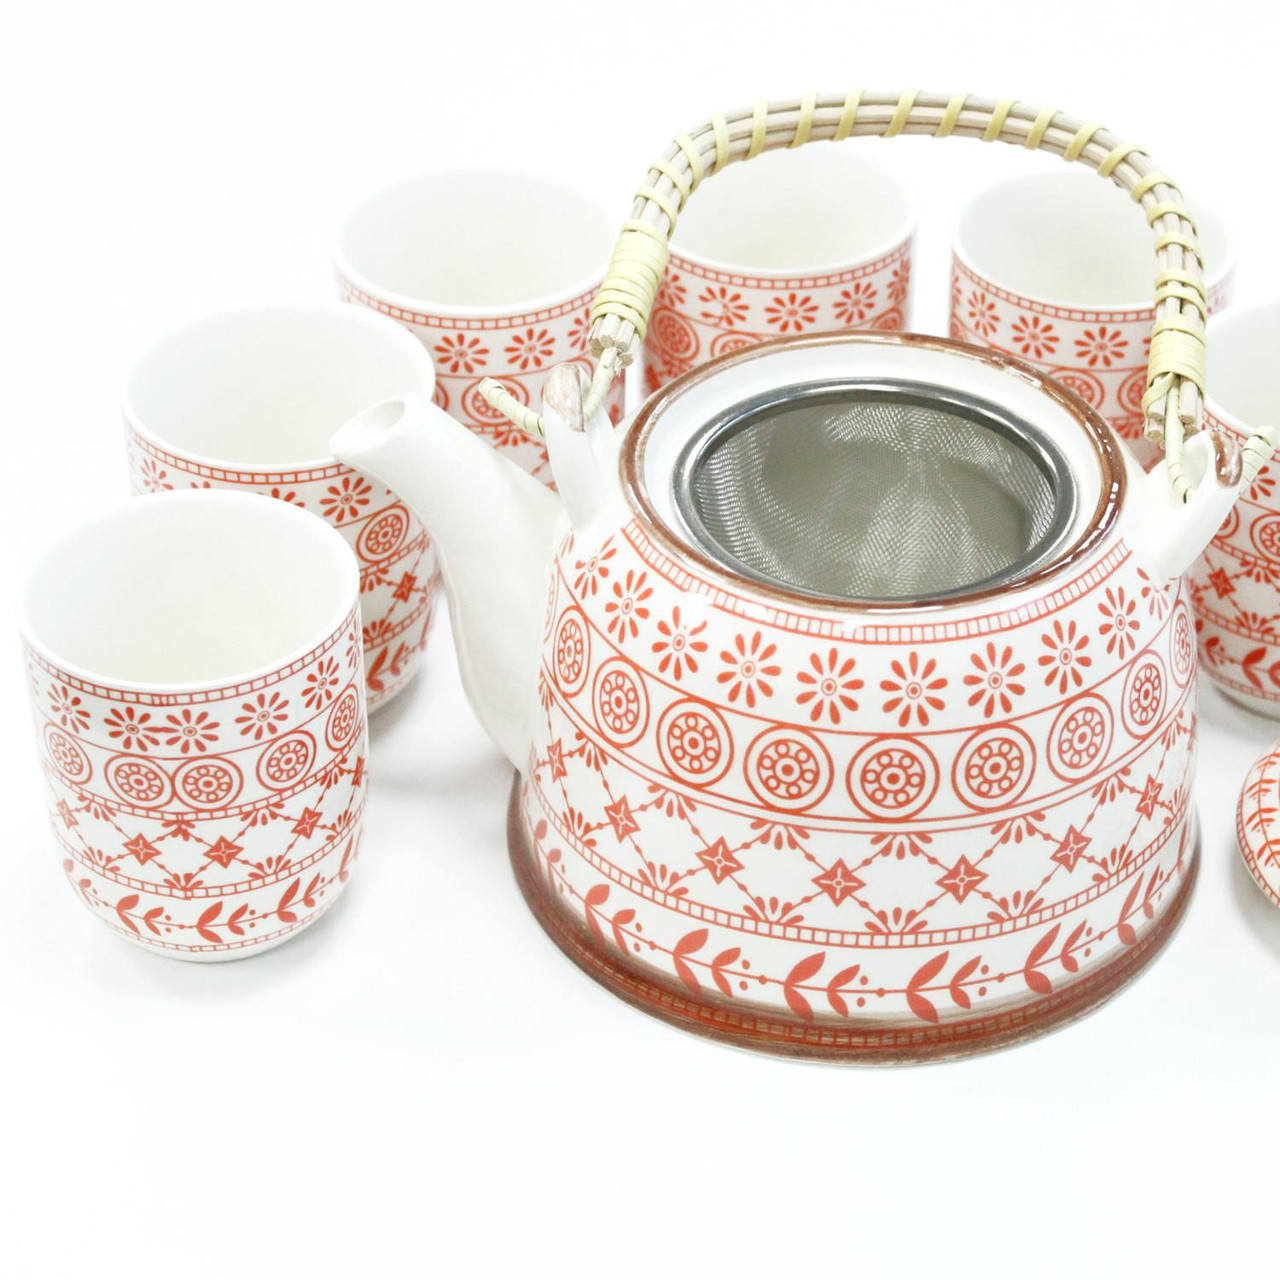 Chinese Herbal TeaSet - Amber Pattern - 6 Cups and Infuser - Boxed